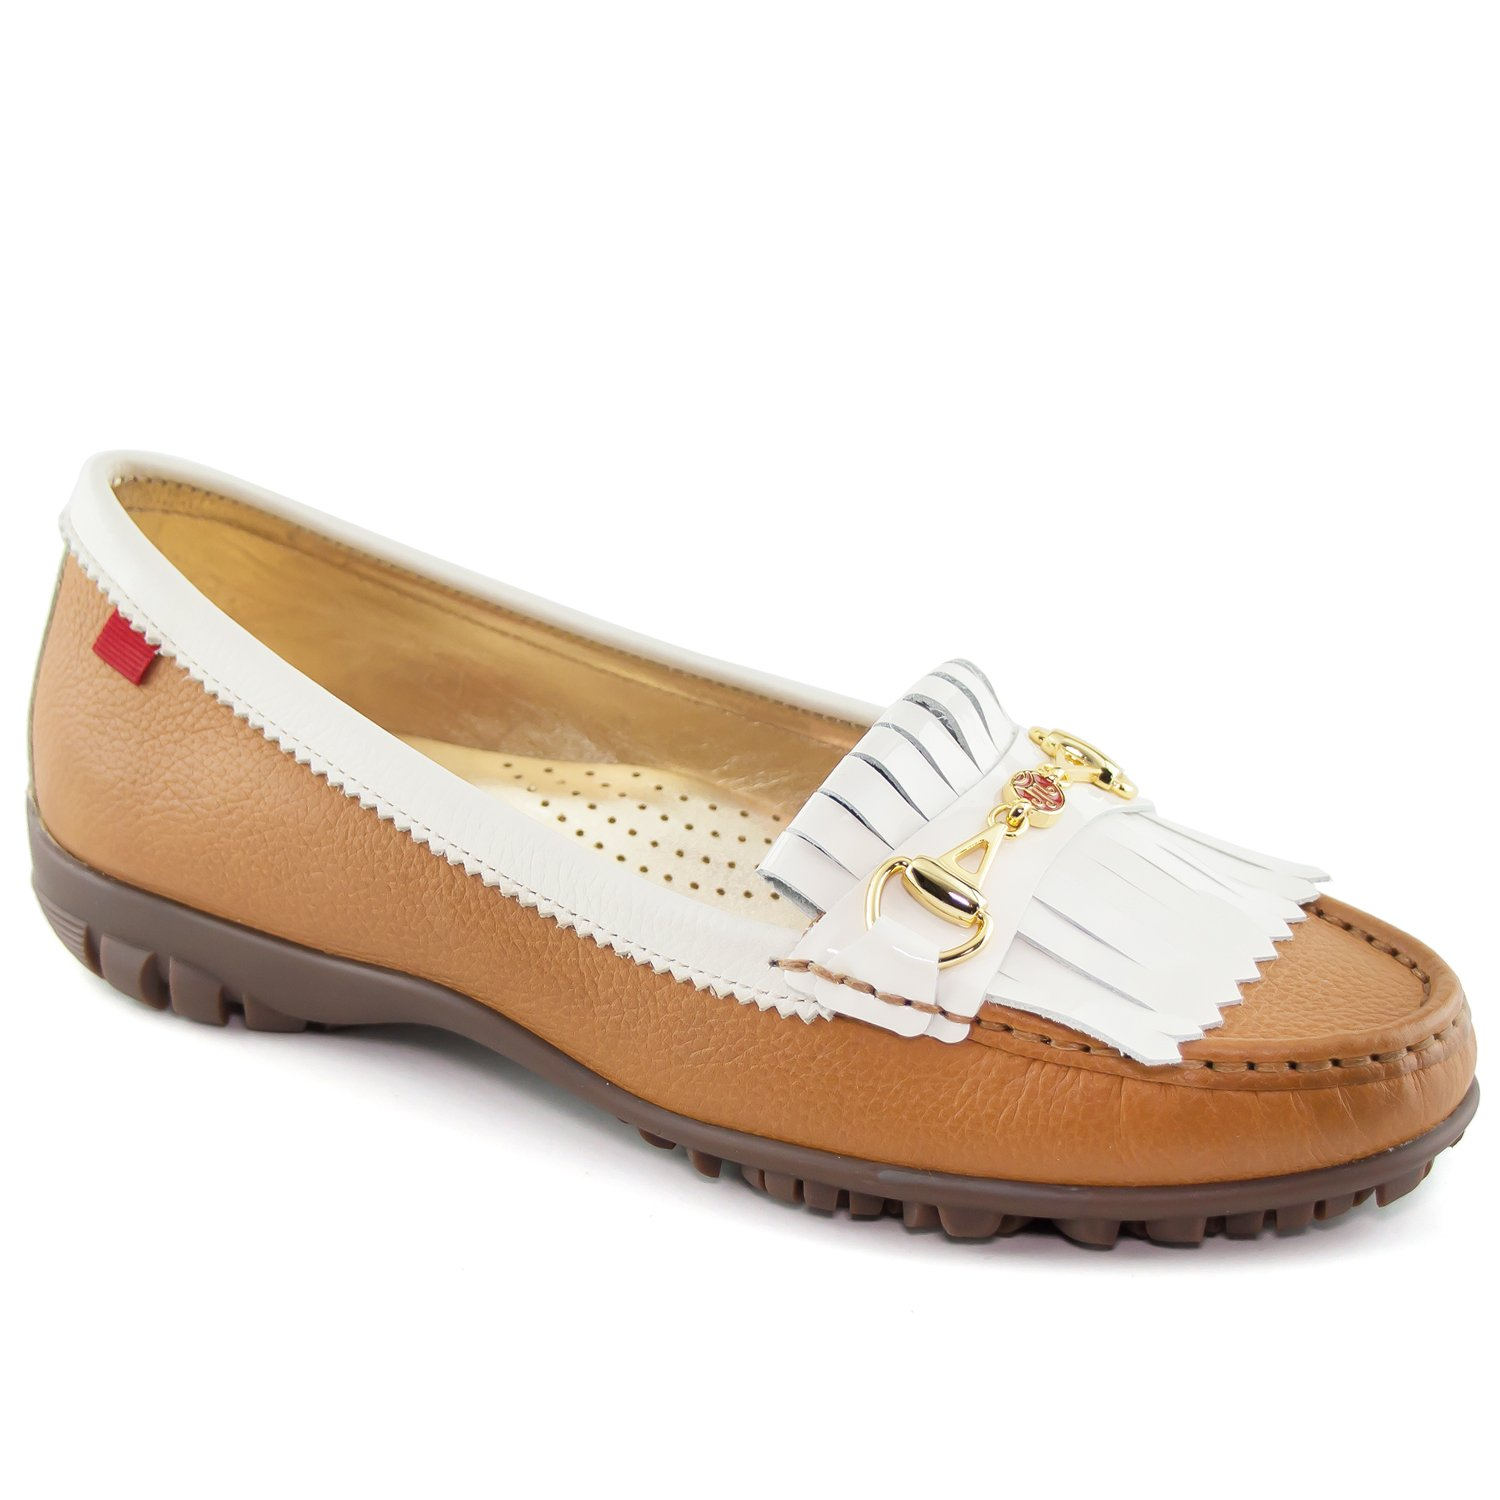 Marc Joseph New York Women's Fashion Shoes Lexington Golf Tan Grainy With Patent Kilt Moccassin Size 7